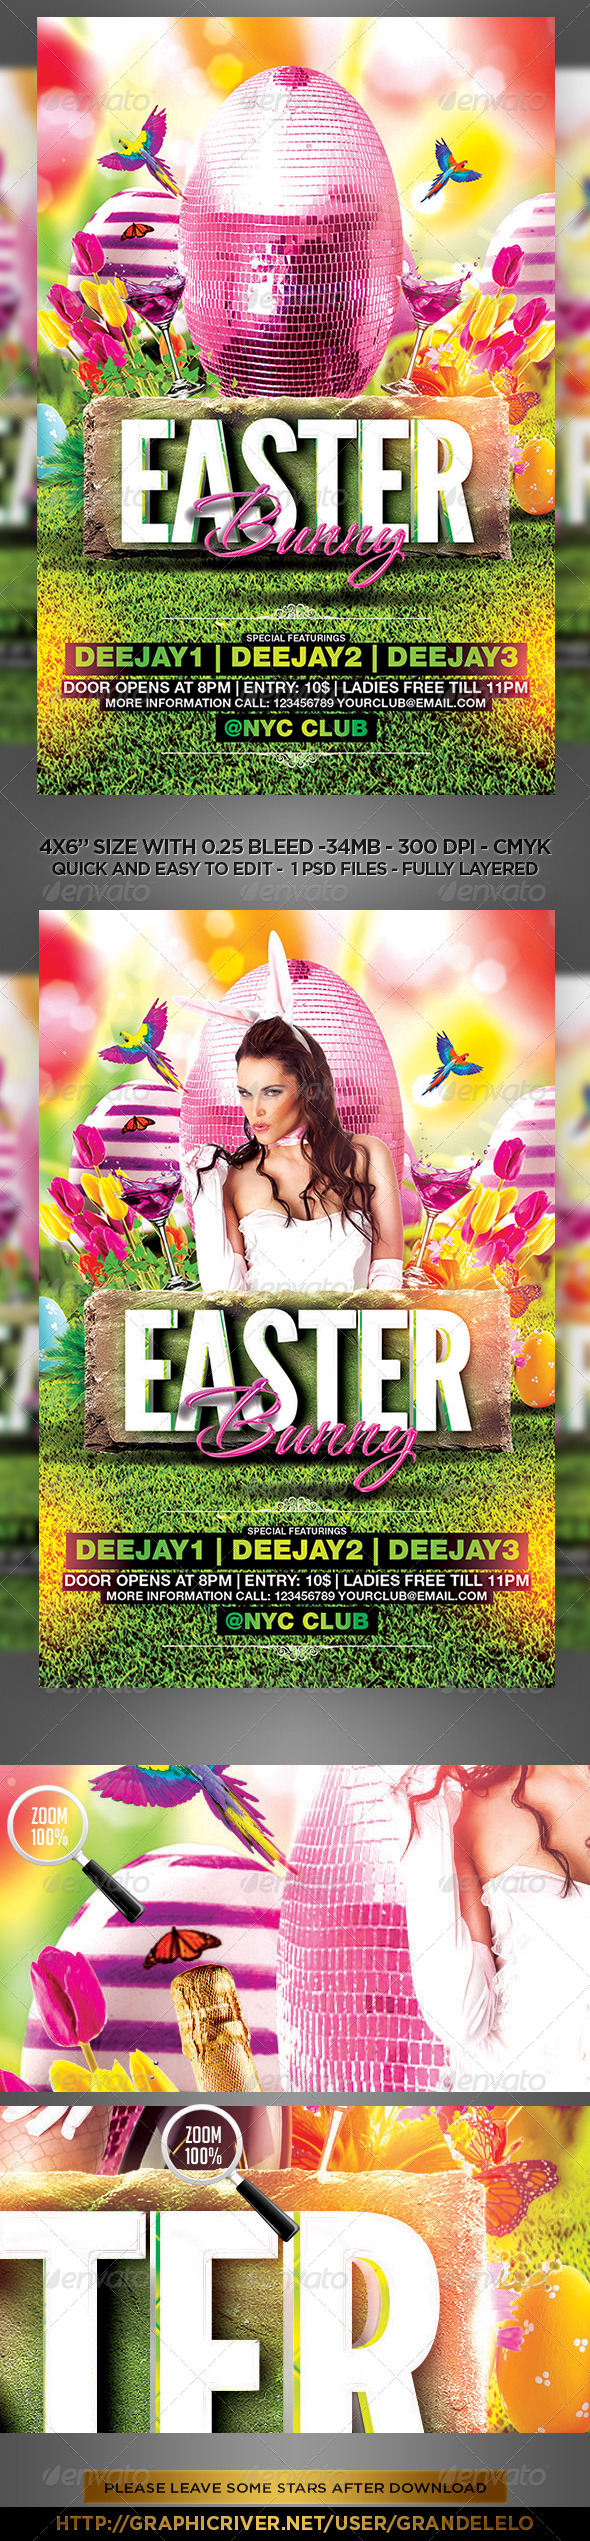 Easter Bunny Flyer Template  - Clubs & Parties Events